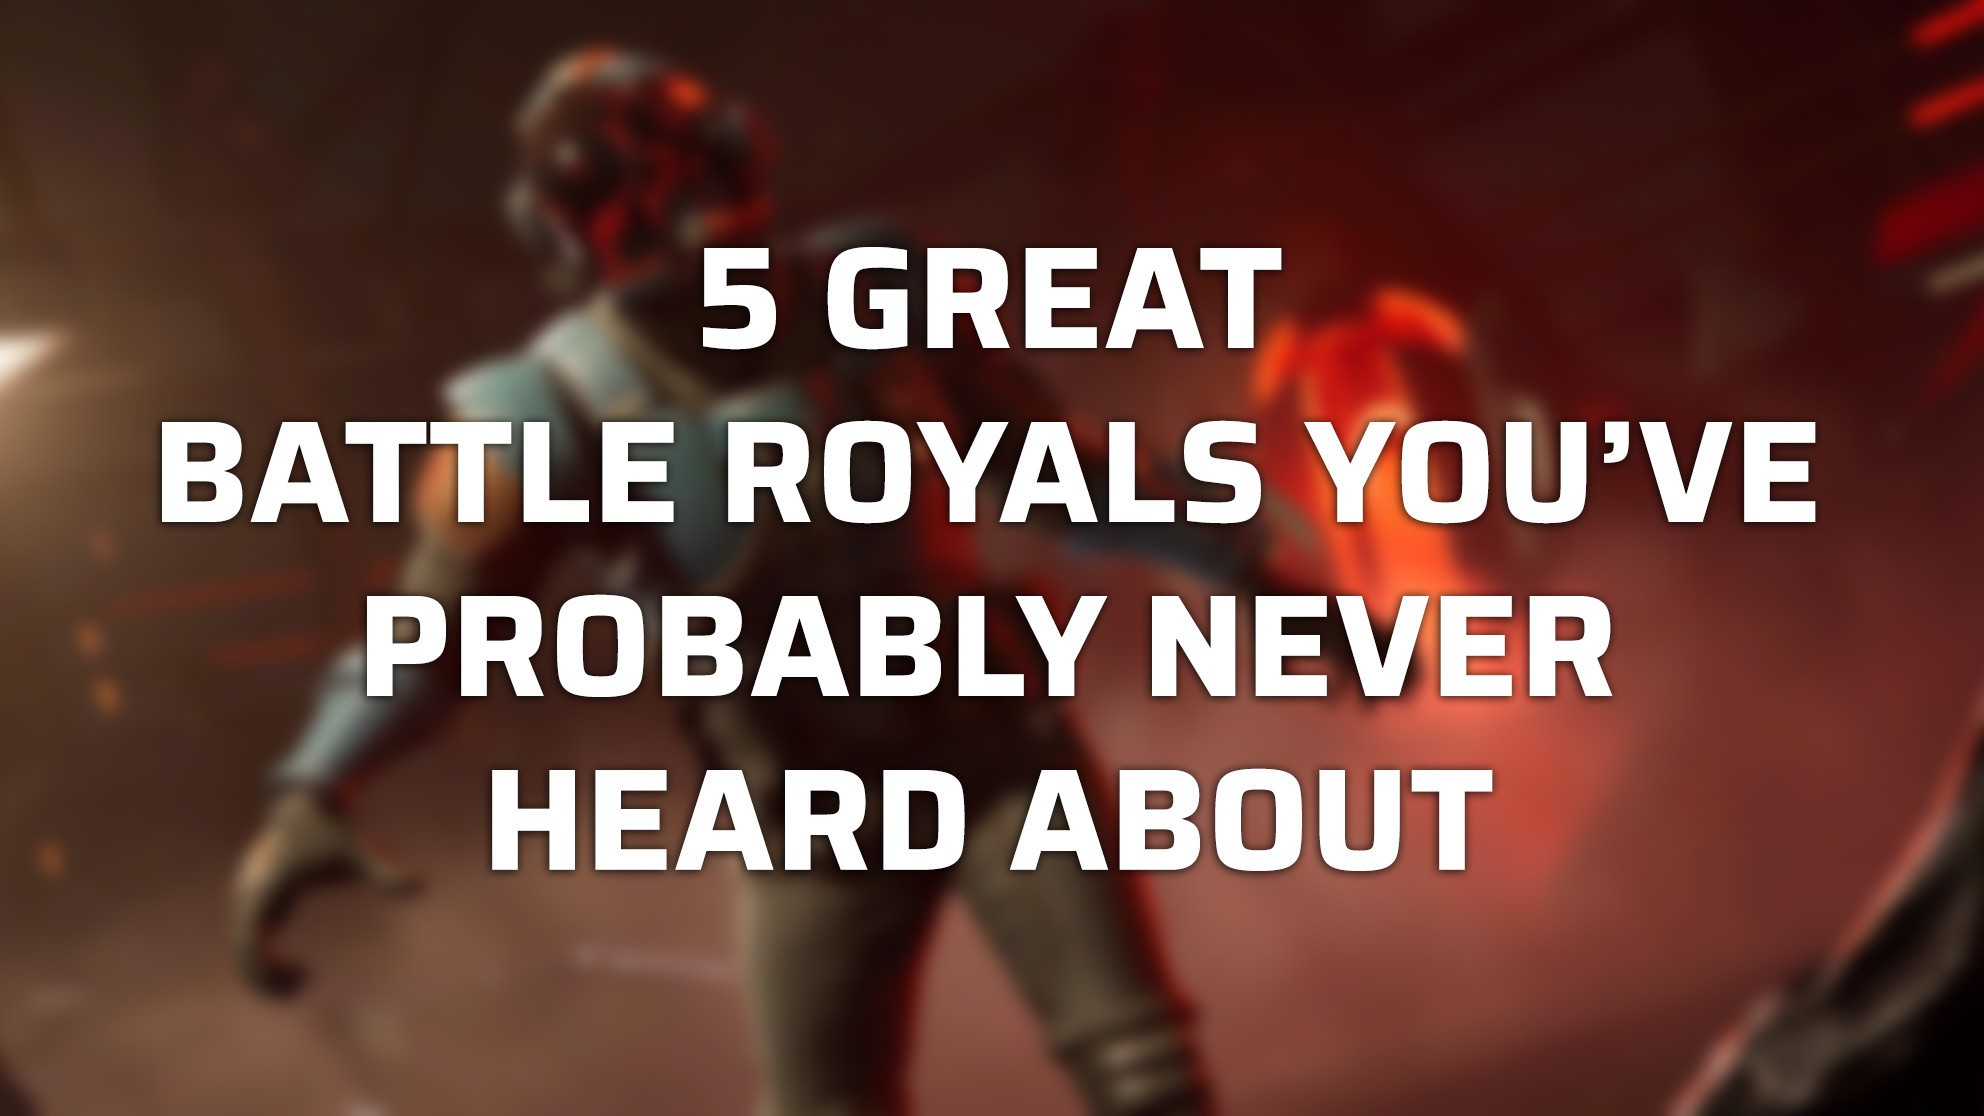 5 great Battle Royals you've probably never heard about